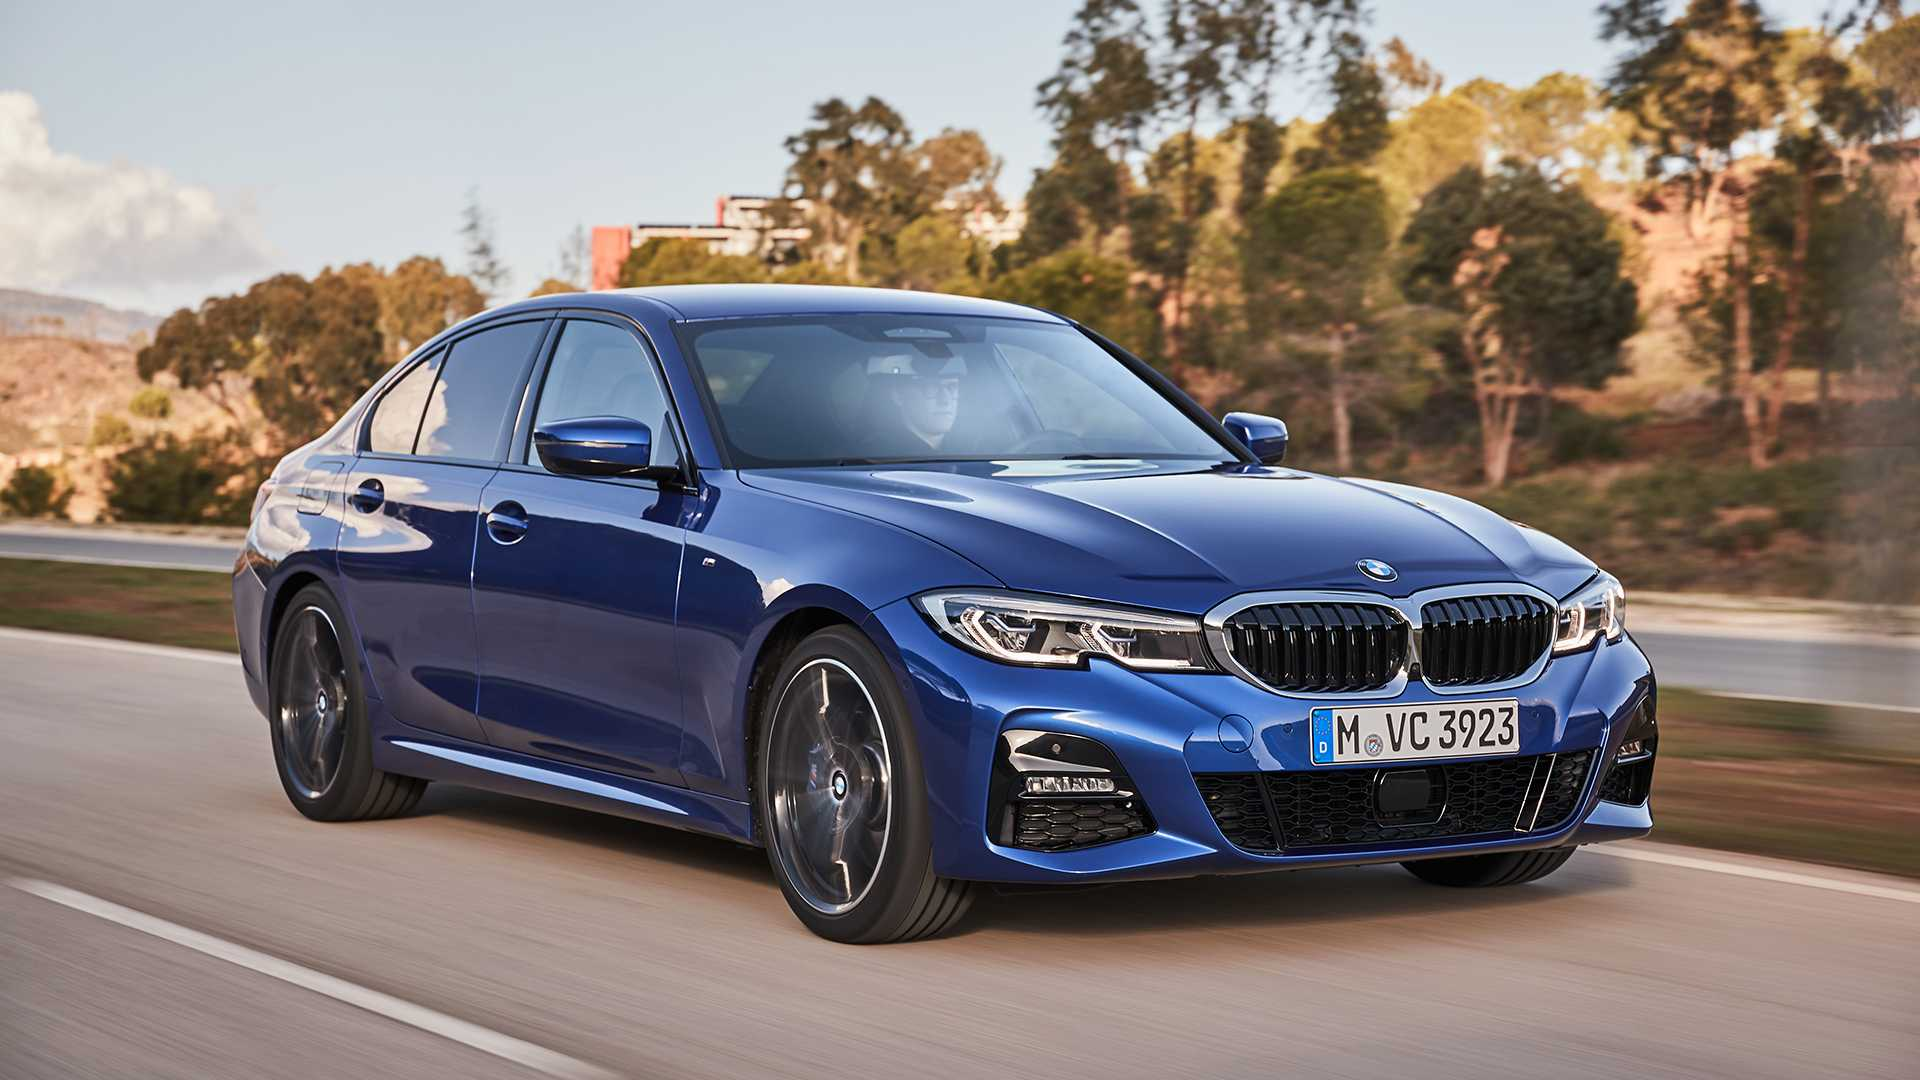 63 Great 2019 3 Series Bmw Exterior and Interior for 2019 3 Series Bmw